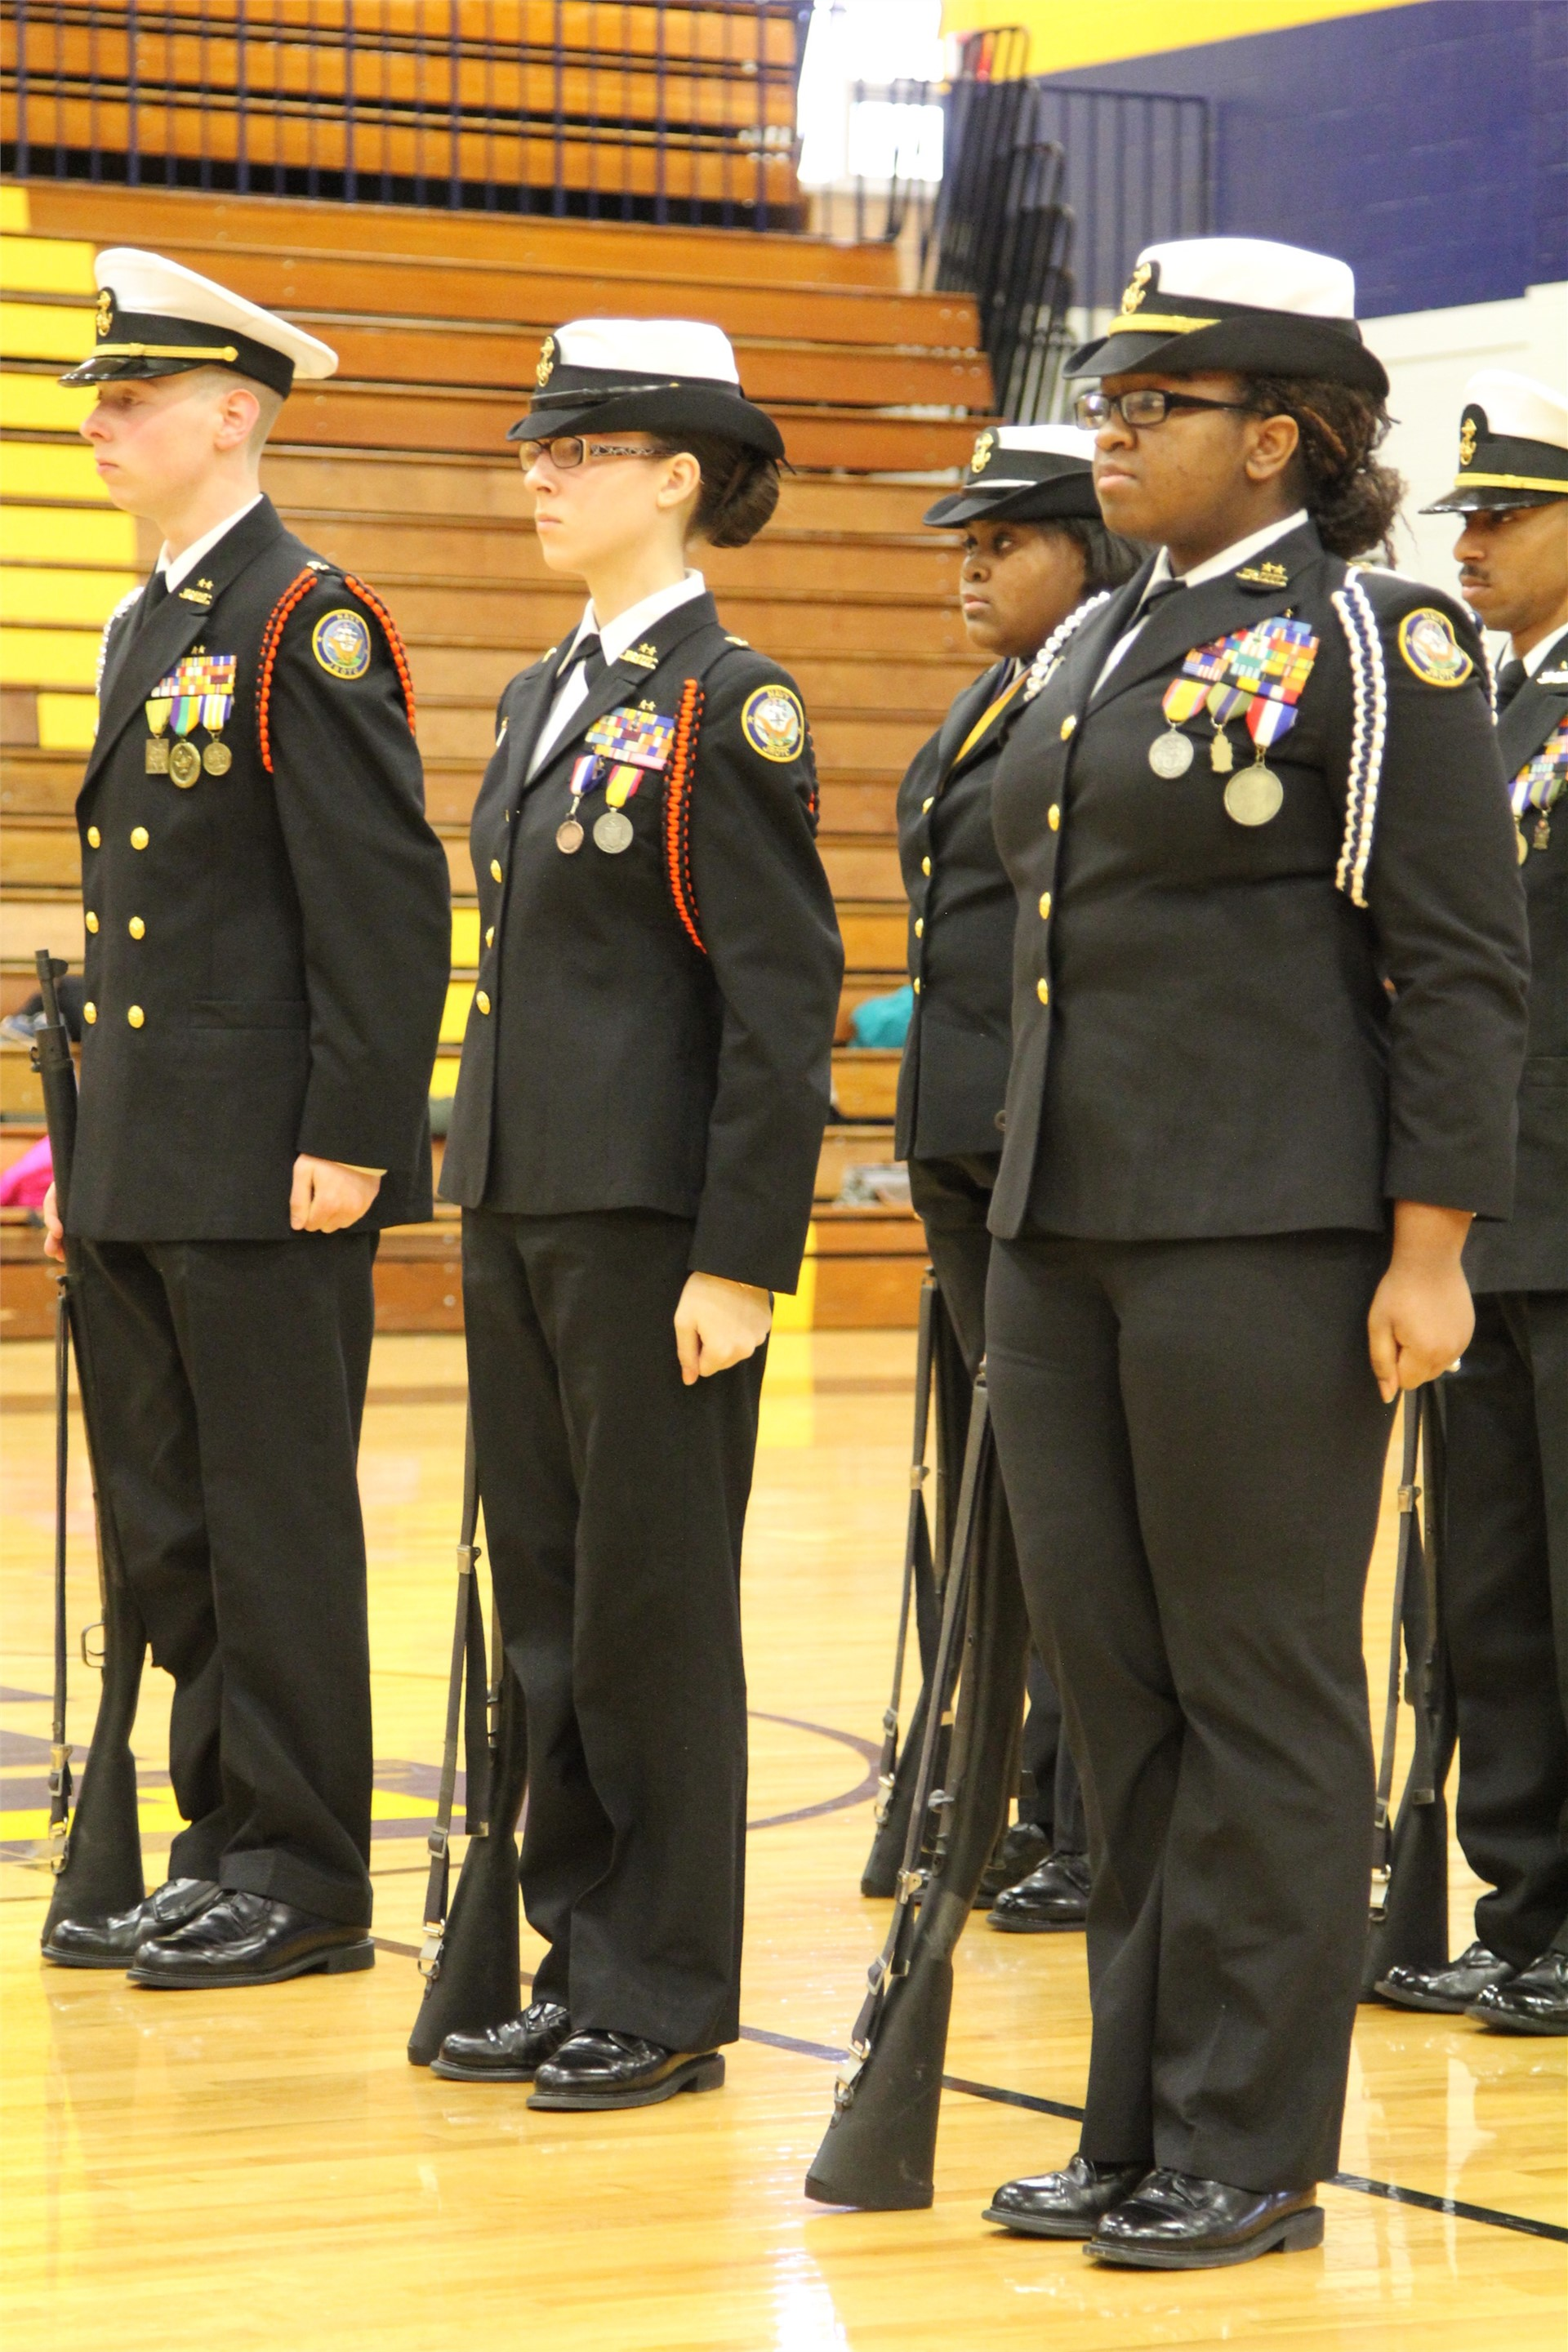 NJROTC students preparing for annual drill